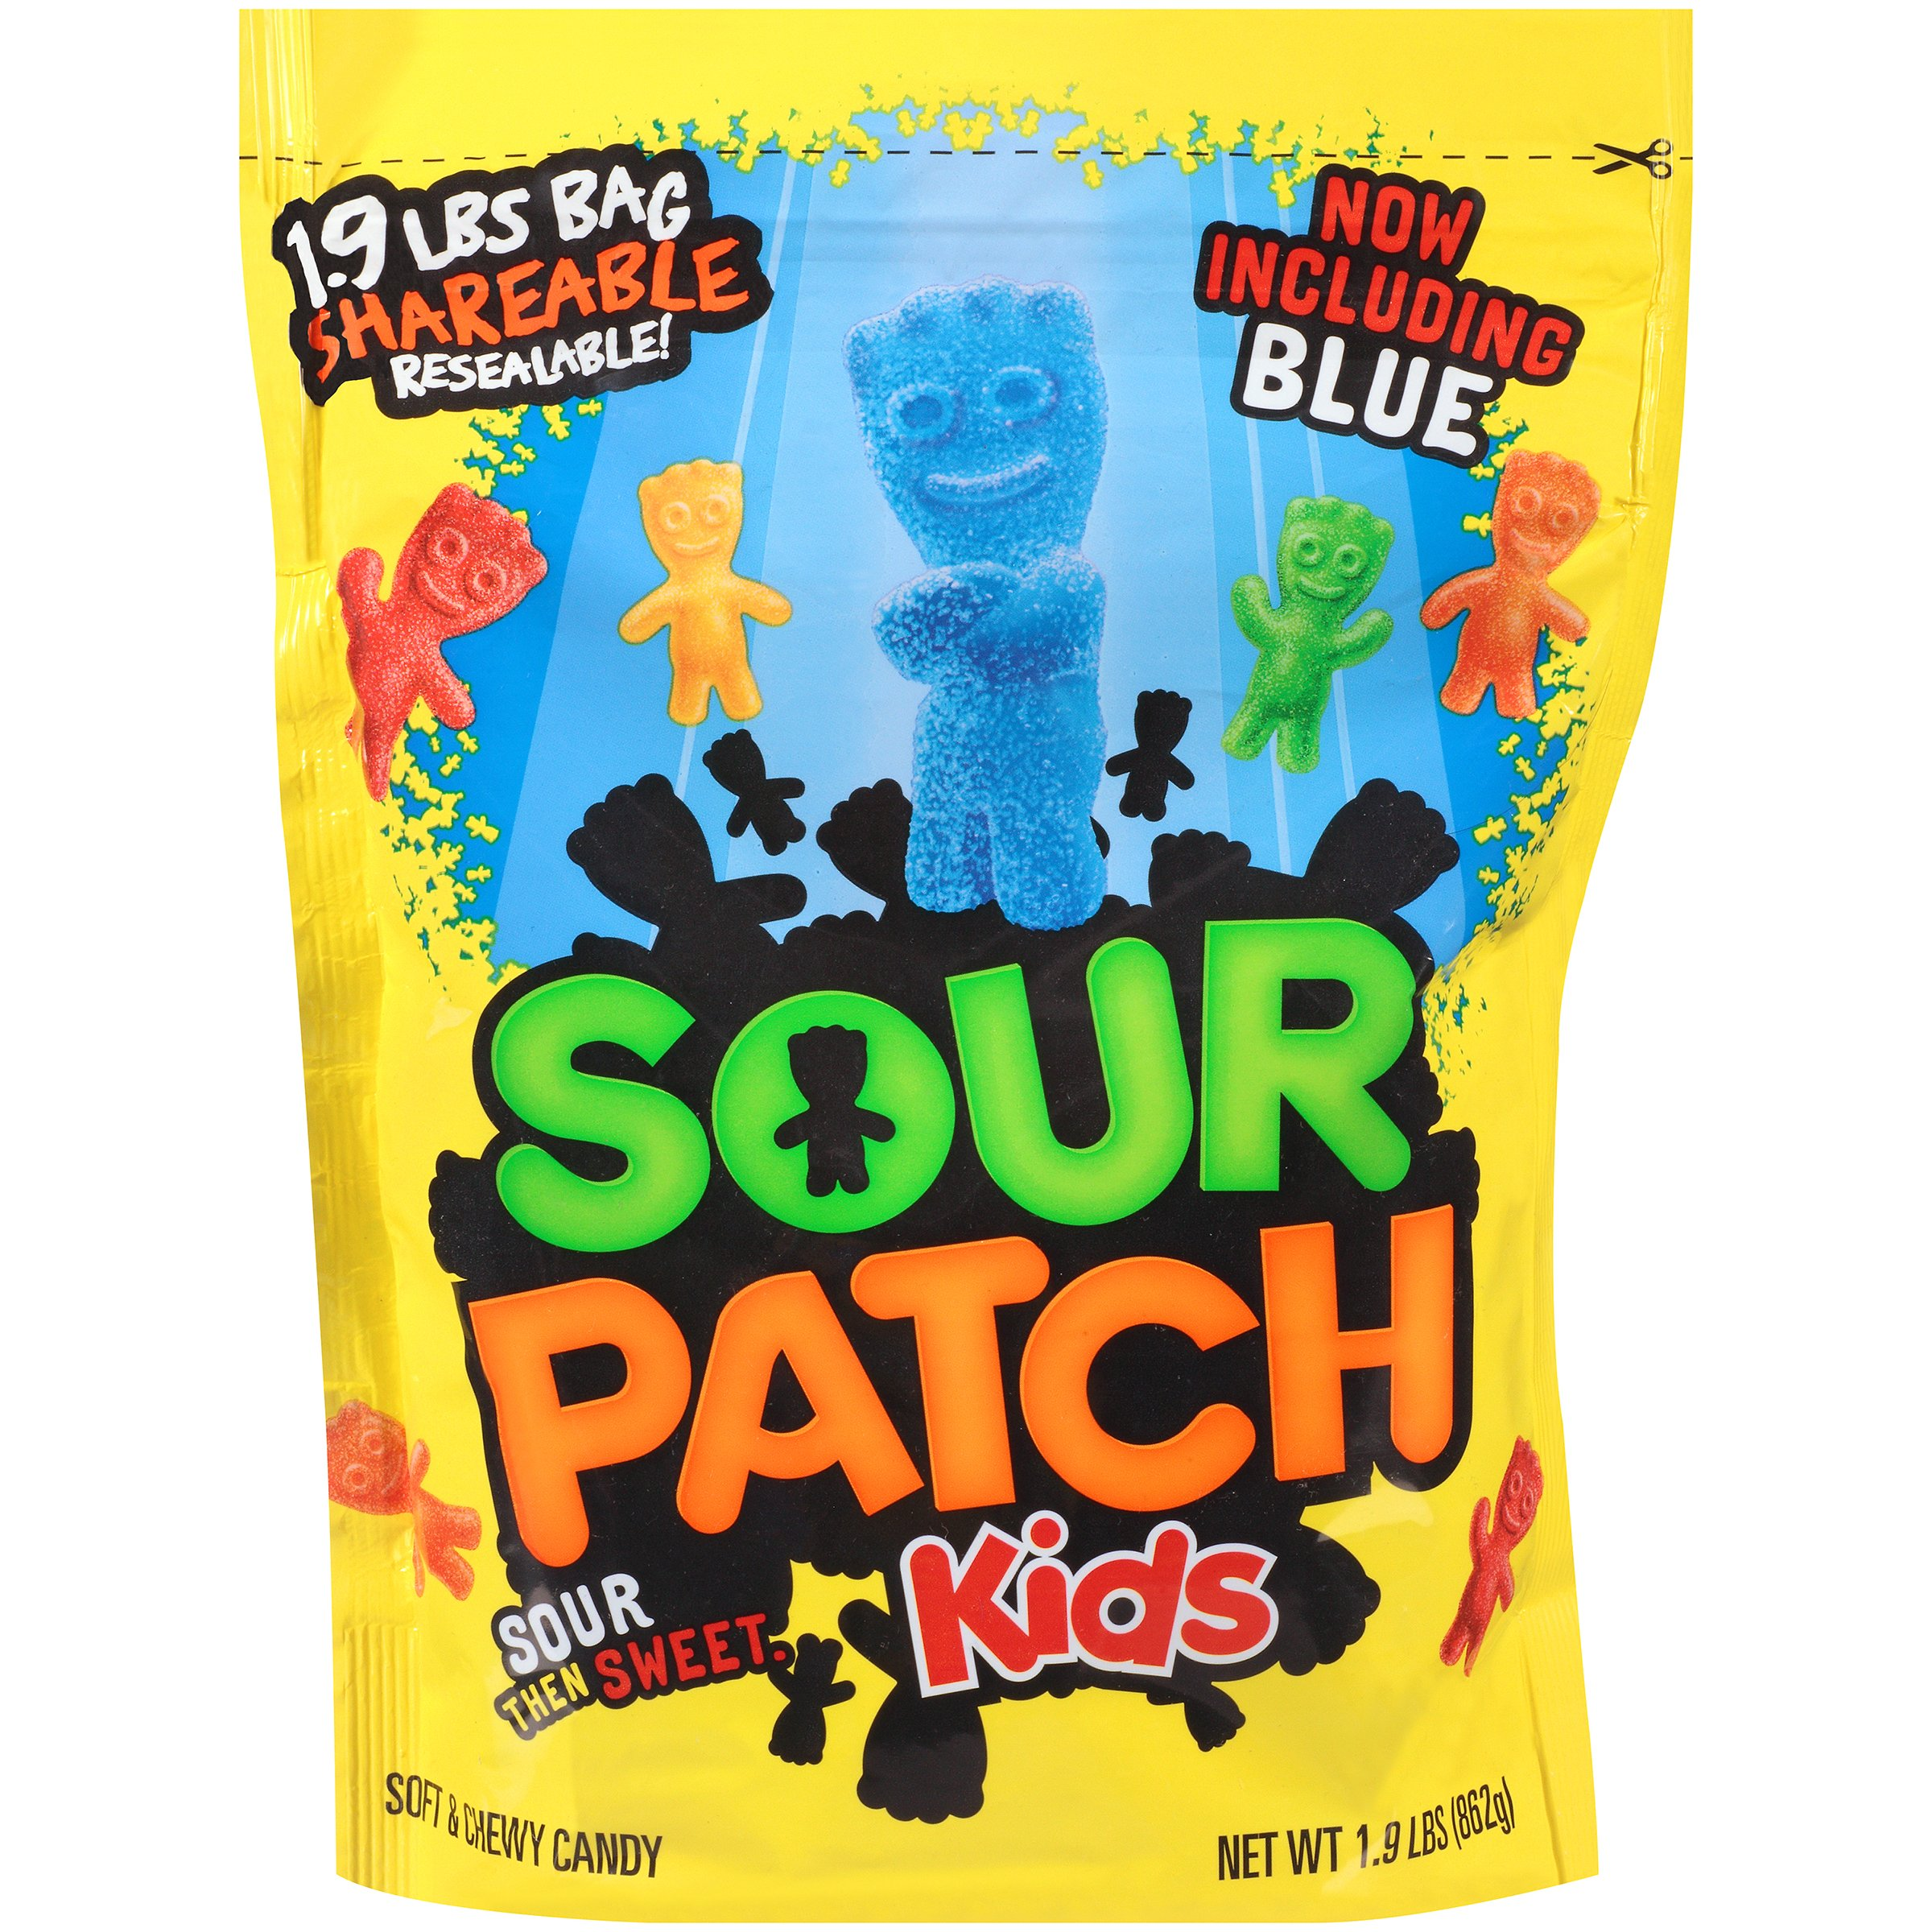 Sour Patch Kids Candy (Original, 30.4 Ounce Bag, Pack of 4) by Sour Patch